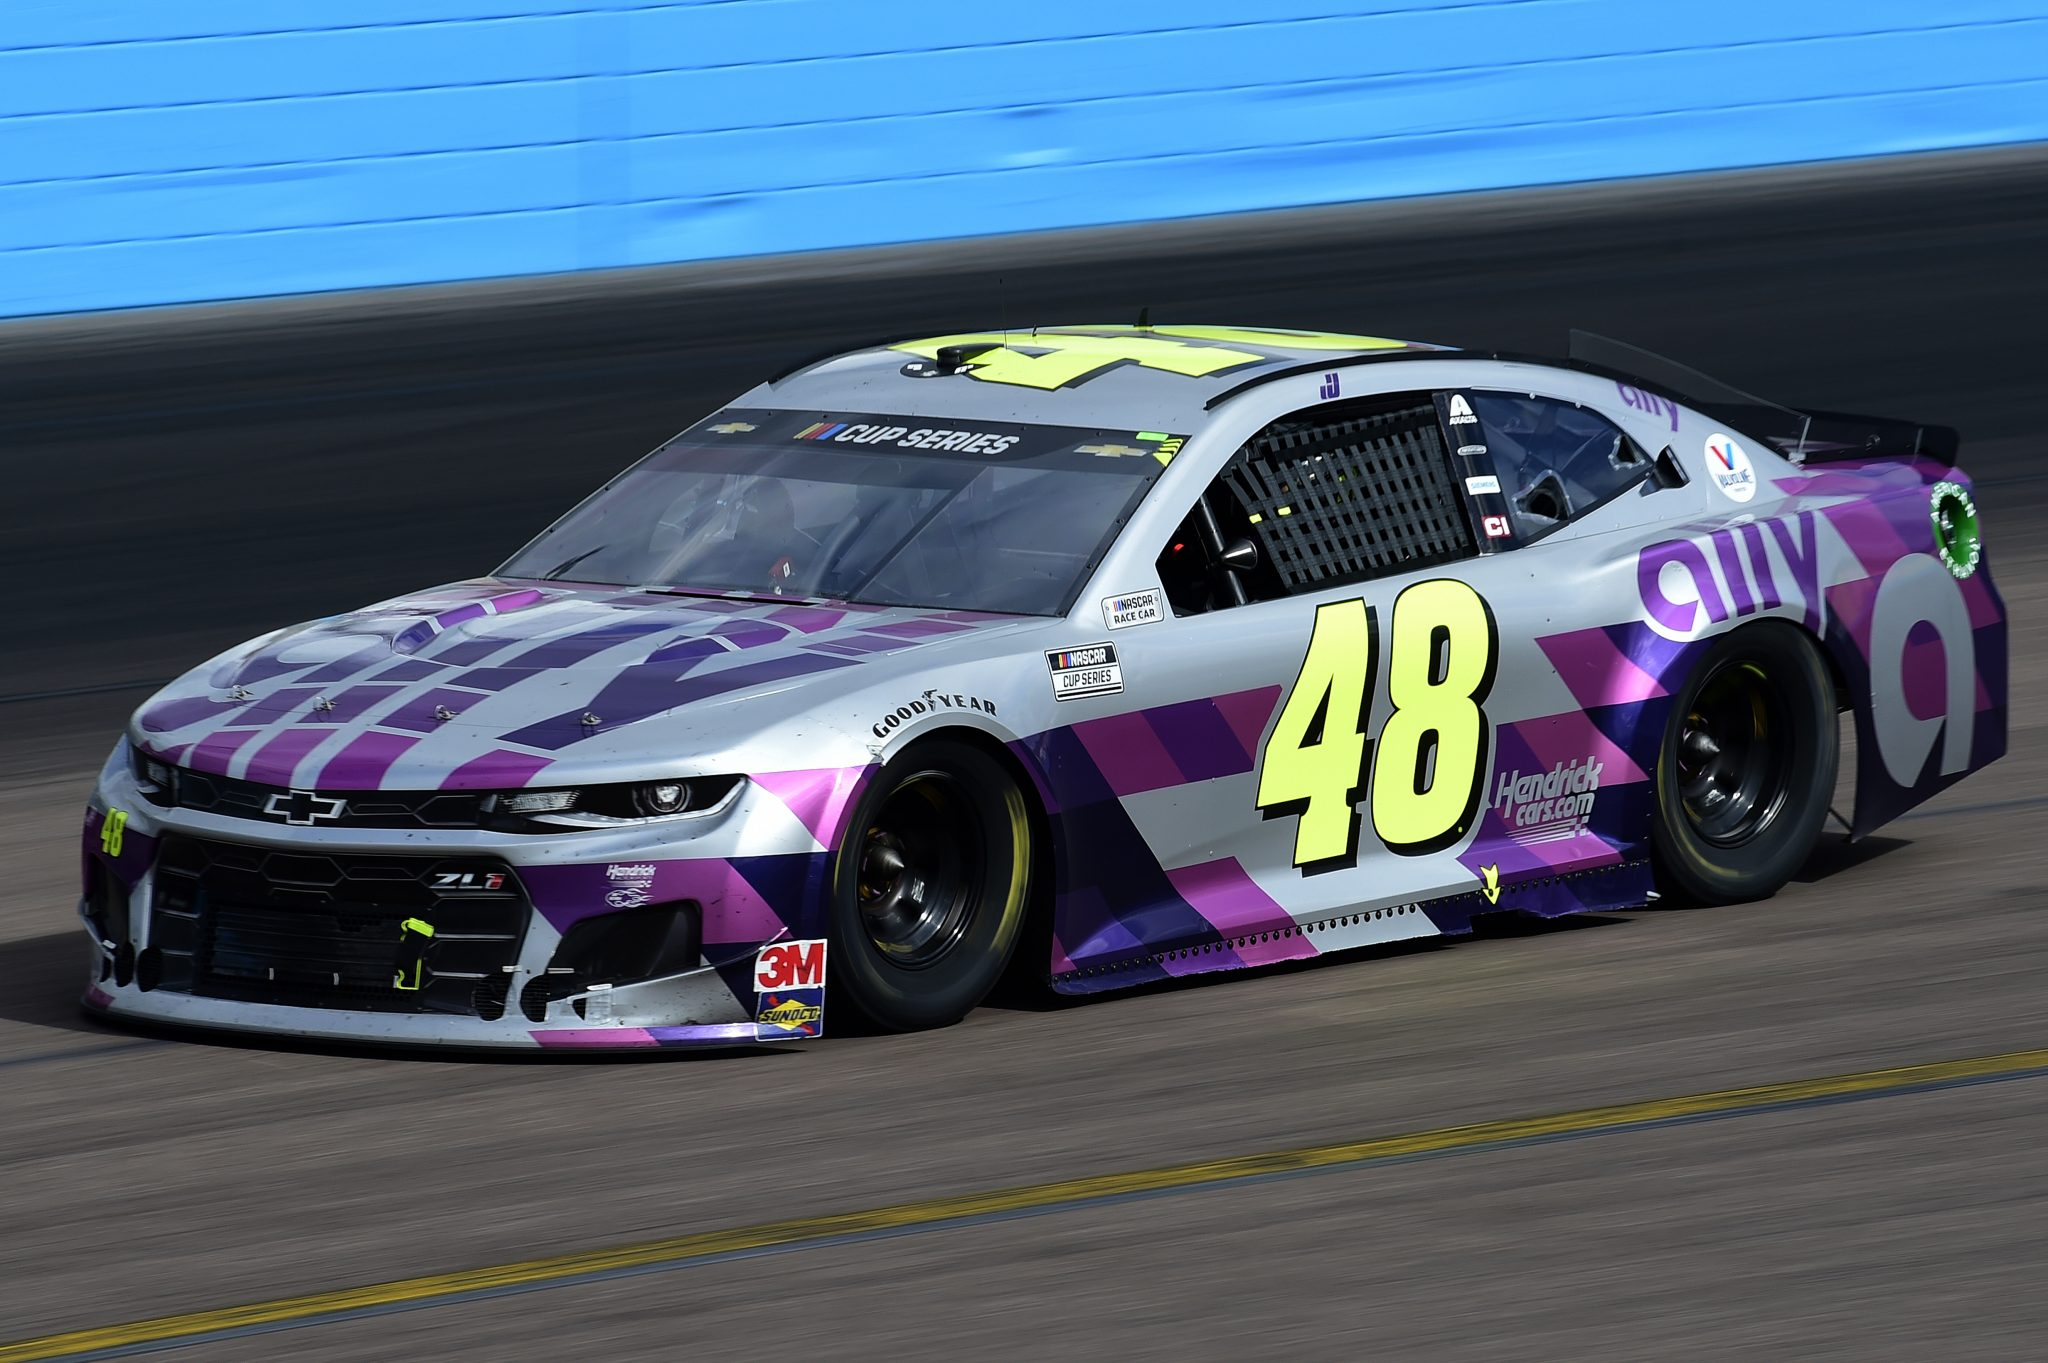 AVONDALE, ARIZONA - NOVEMBER 08: Jimmie Johnson, driver of the #48 Ally Chevrolet, drives during the NASCAR Cup Series Season Finale 500 at Phoenix Raceway on November 08, 2020 in Avondale, Arizona. (Photo by Jared C. Tilton/Getty Images) | Getty Images